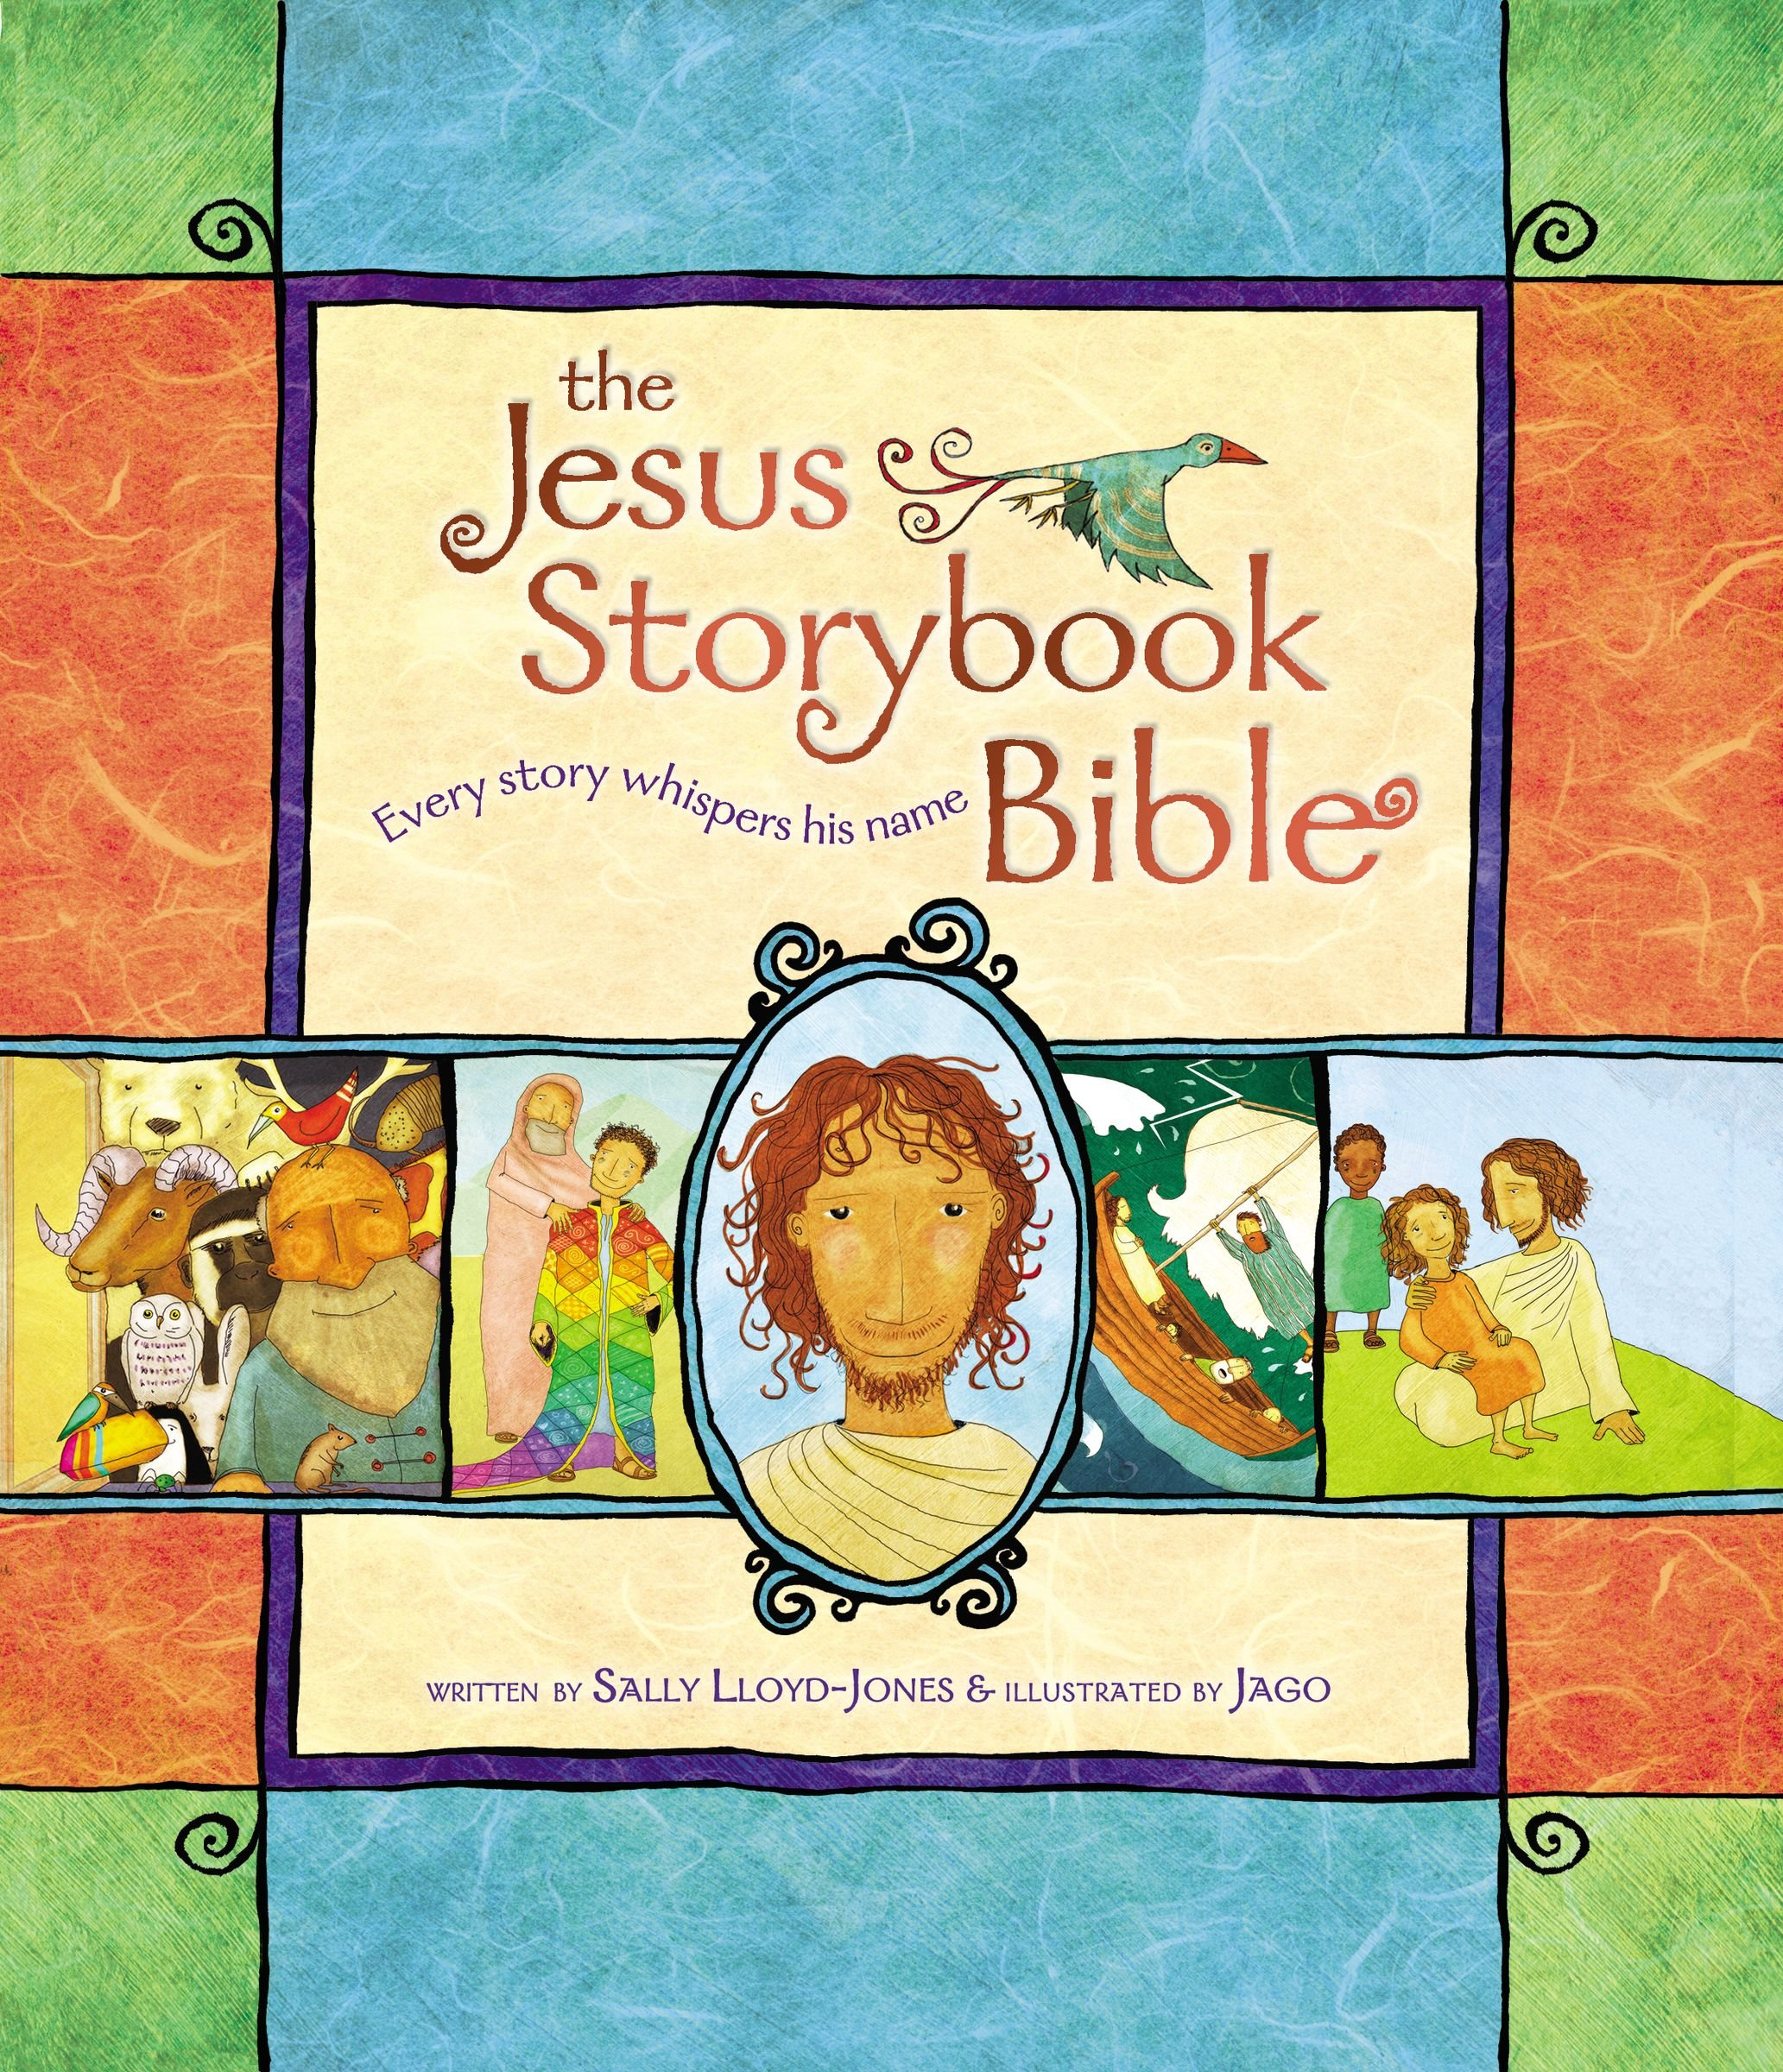 Easter the advent kids book recommendations negle Choice Image